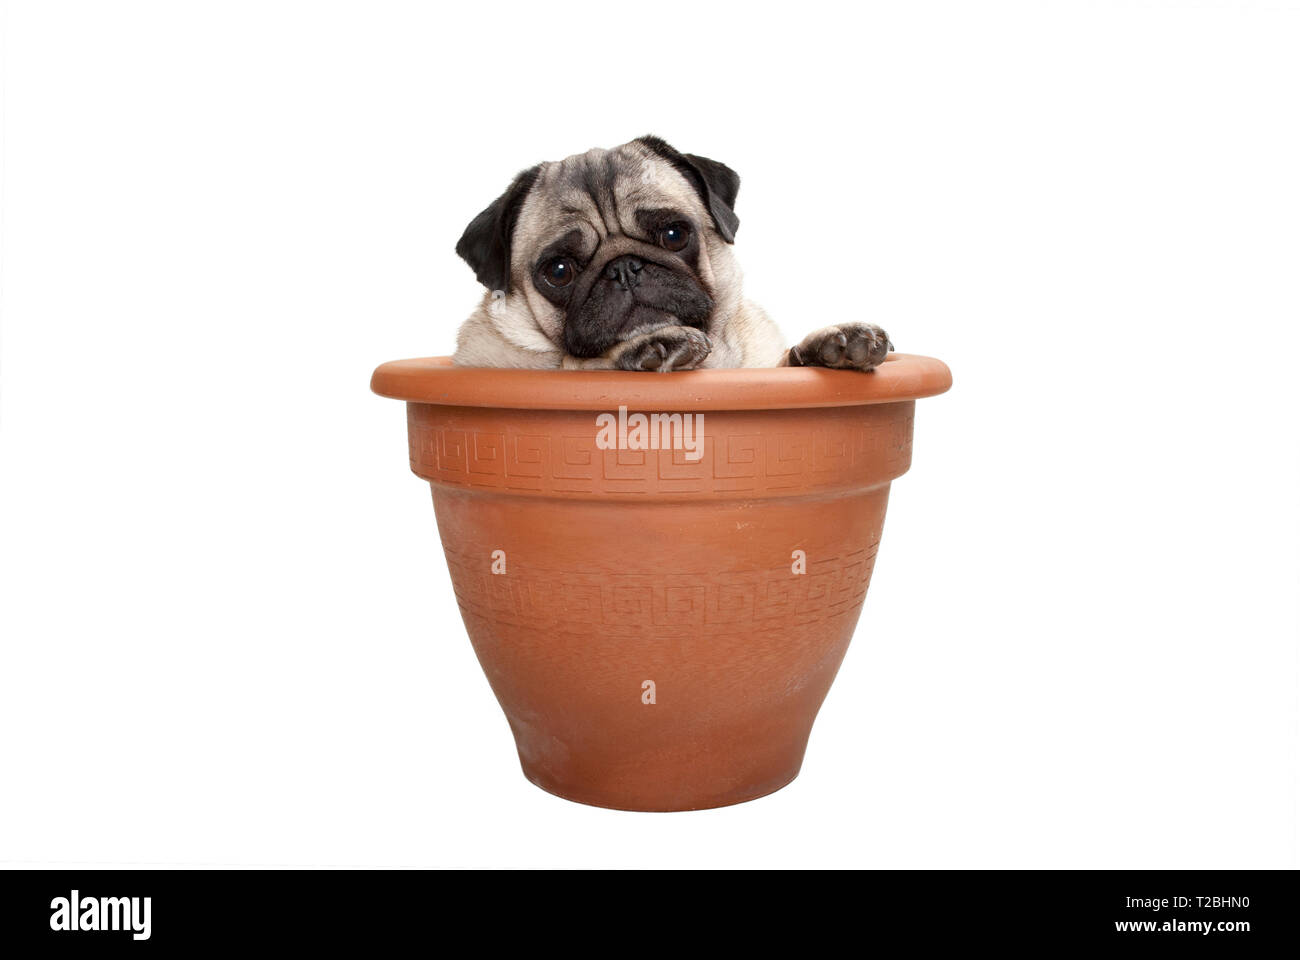 cute sweet pug dog sitting in terracotta plant pot, isolated on white background Stock Photo